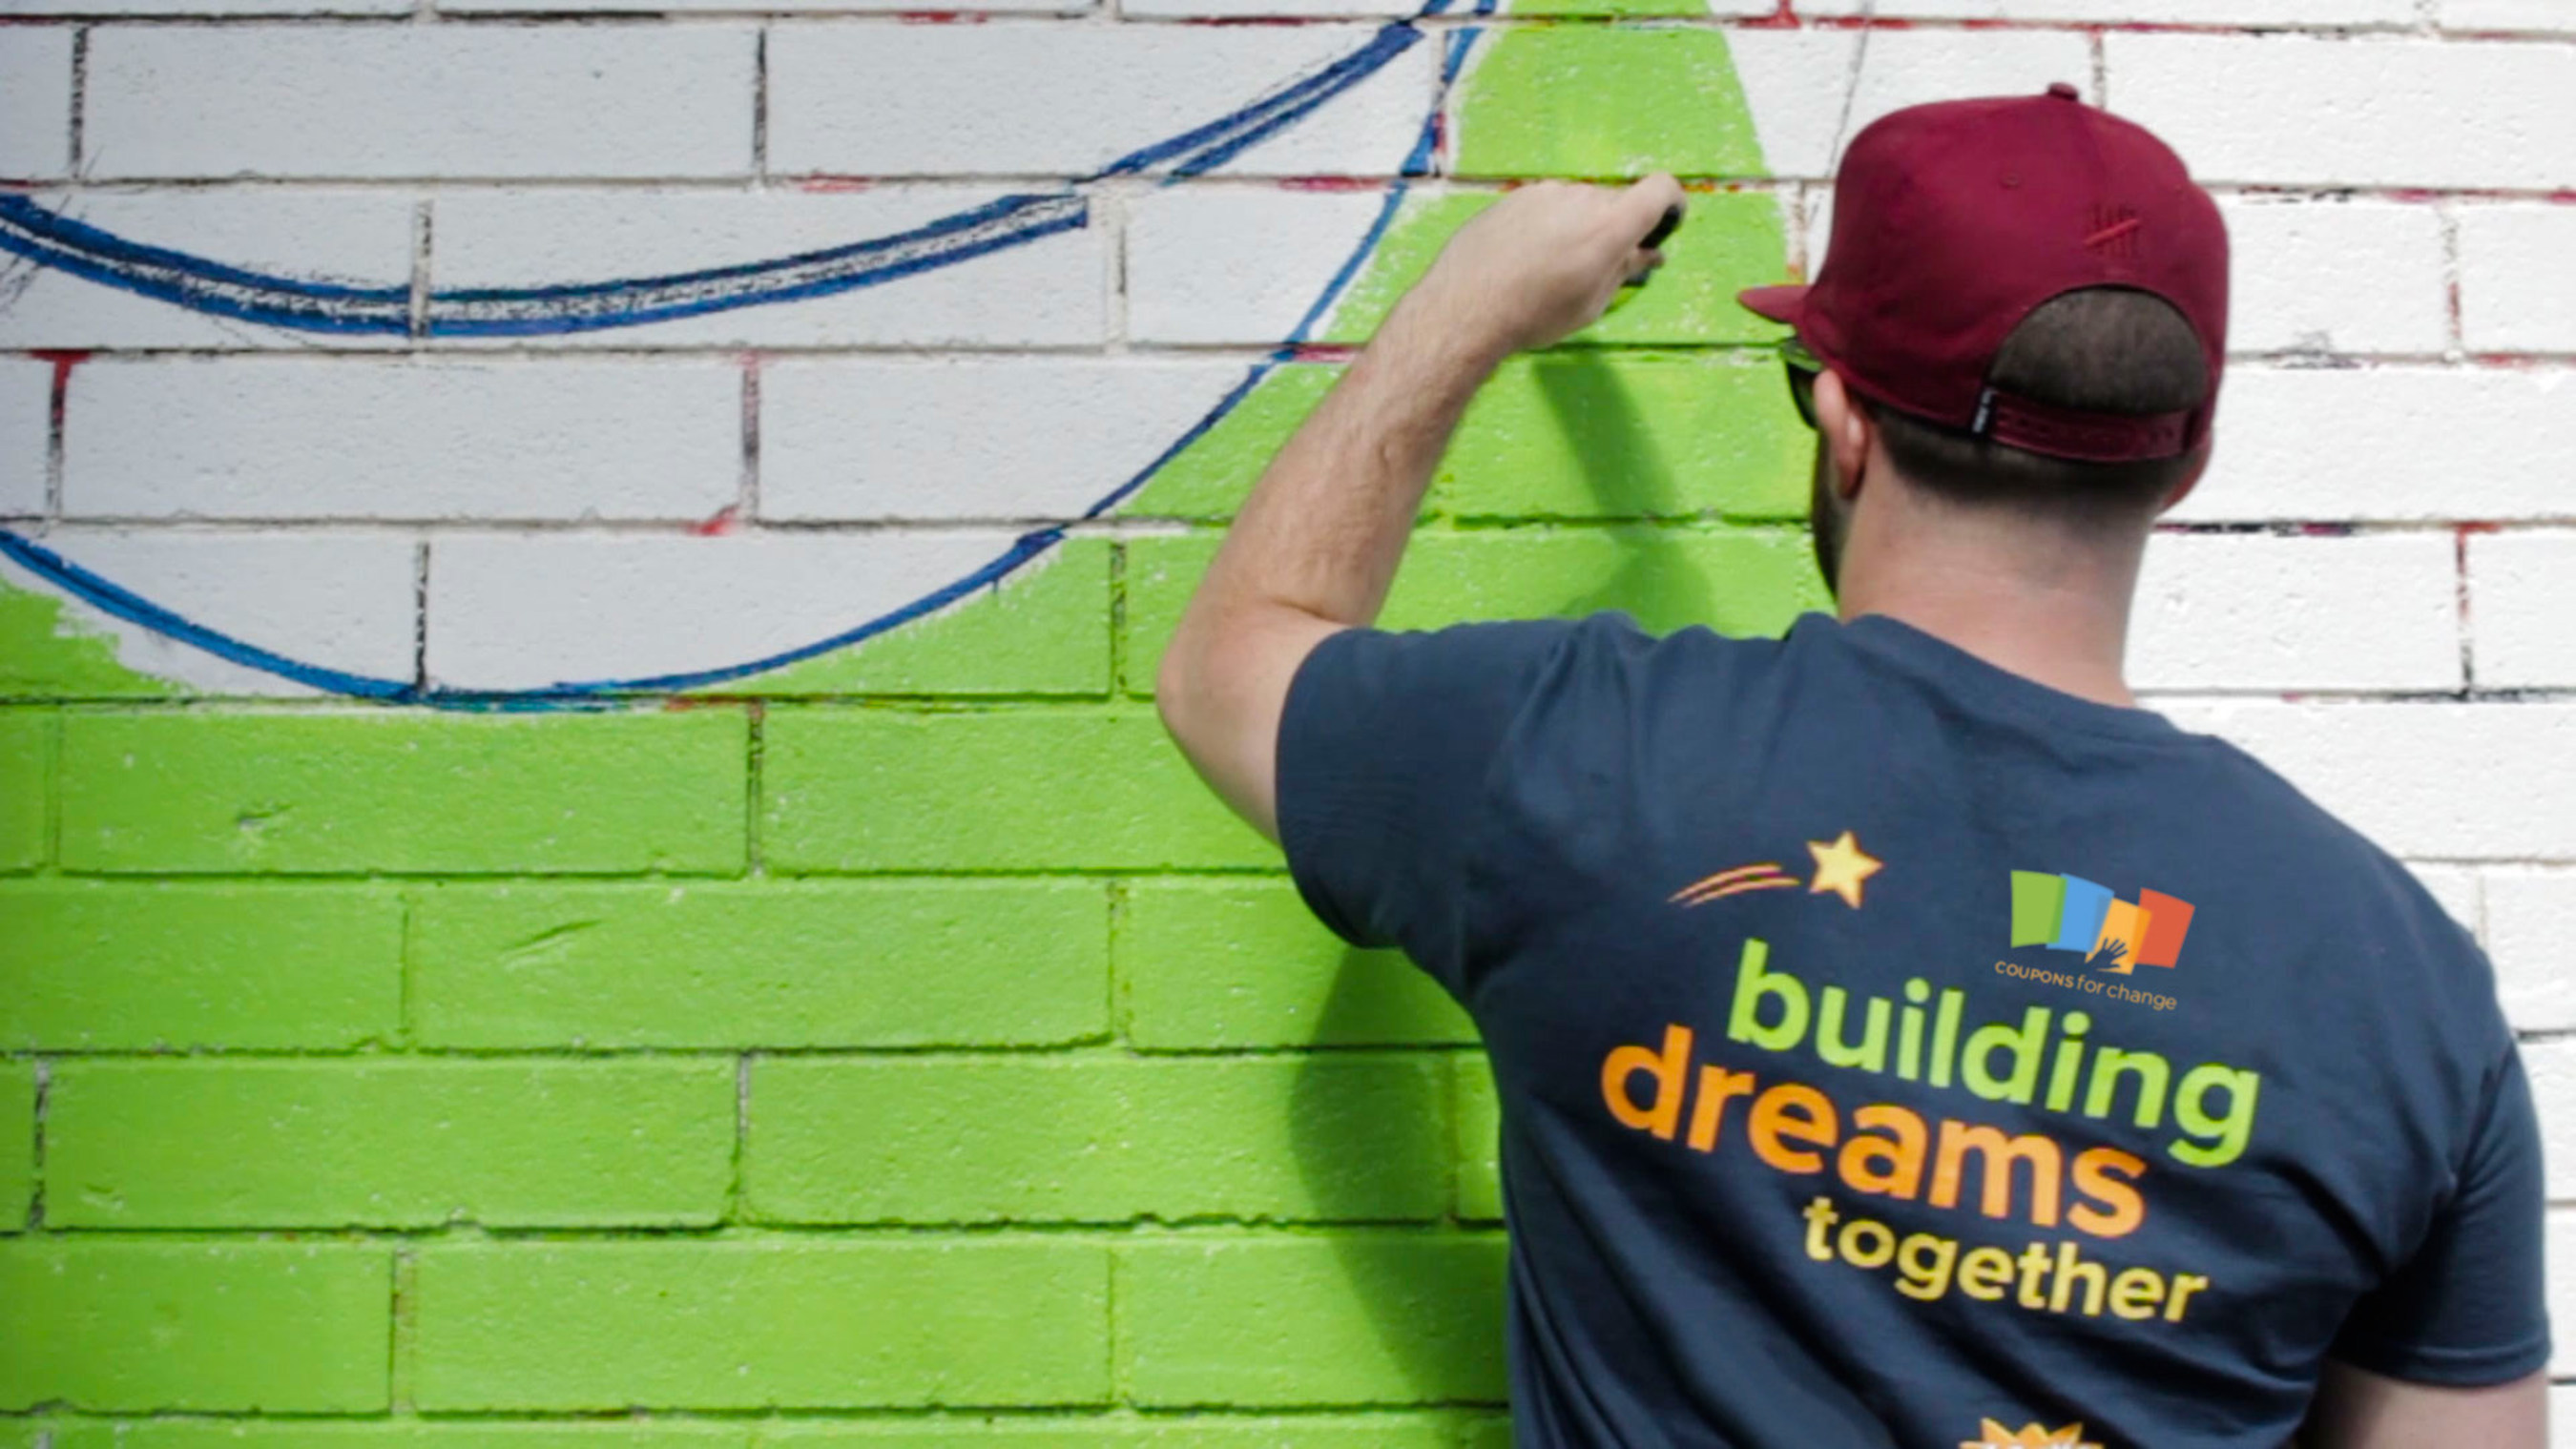 Coupons.com & KaBOOM! will join forces to build at Roses in Concrete School in Oakland, CA